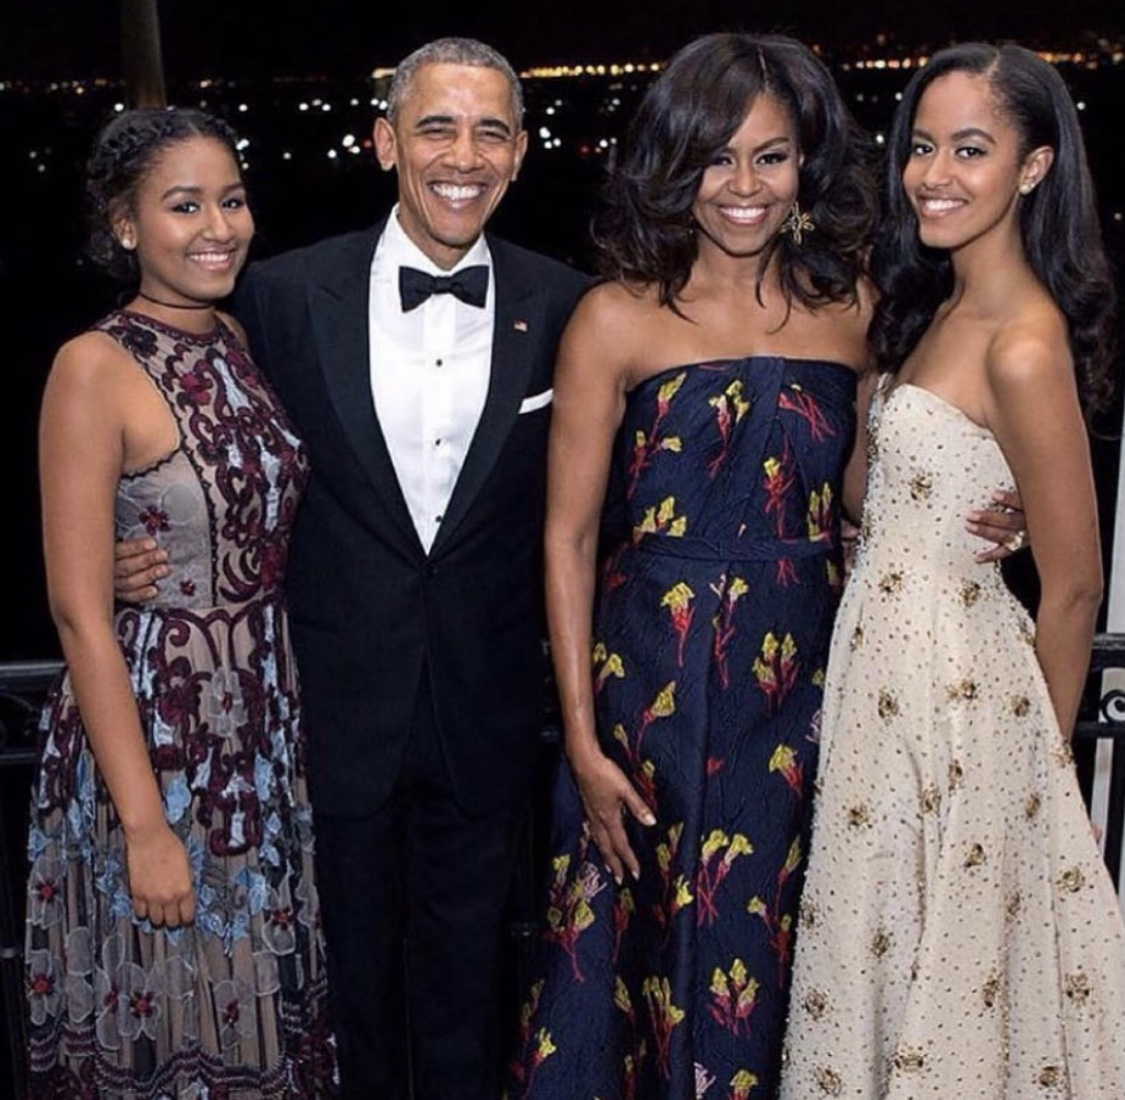 inspiring-women-oarack-obama-instyle-magazine-a-promised-land-book